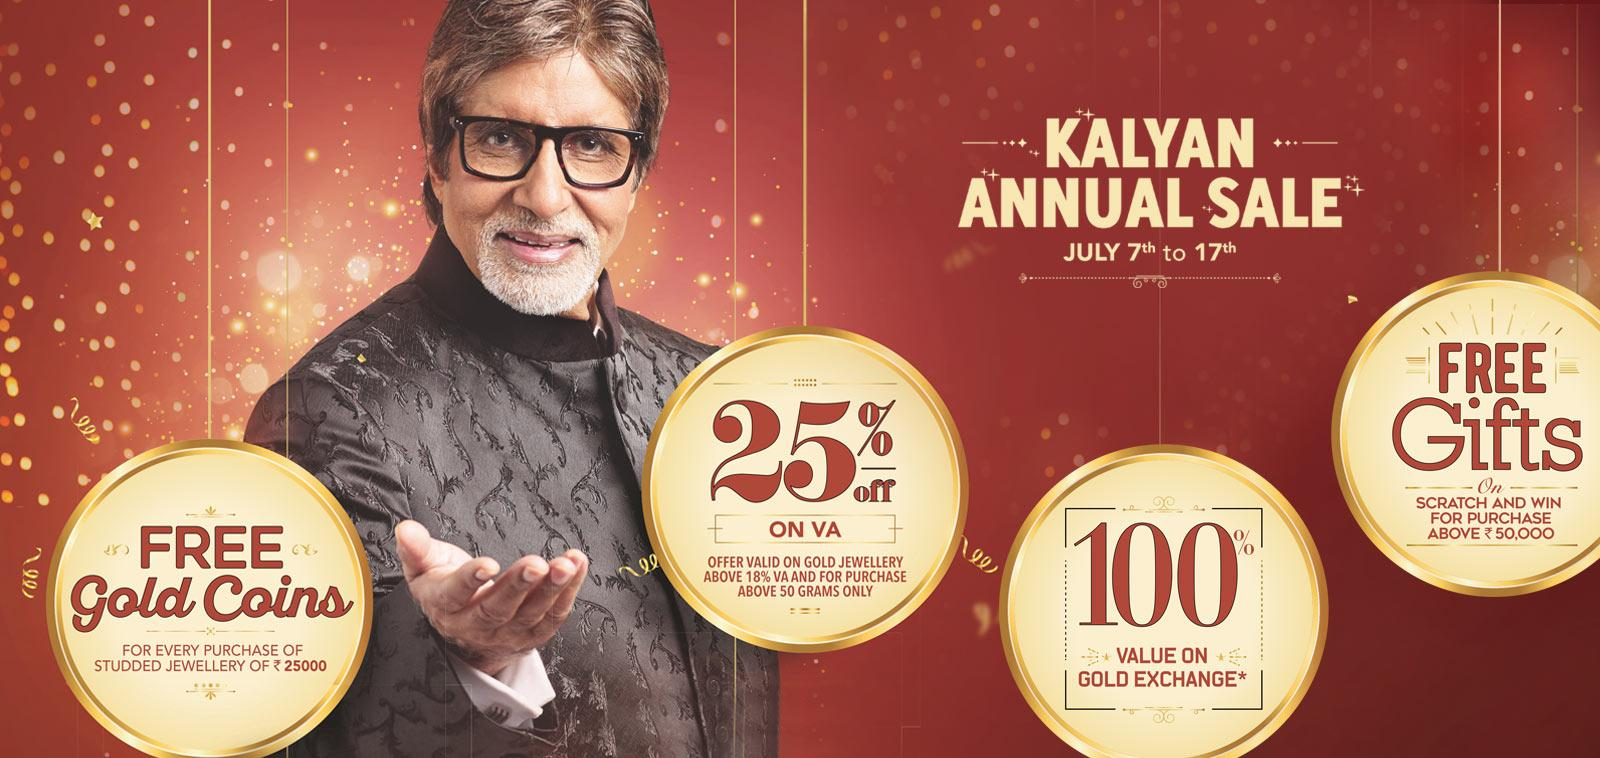 Kalyan Jewellers announces Annual Sale from July 7